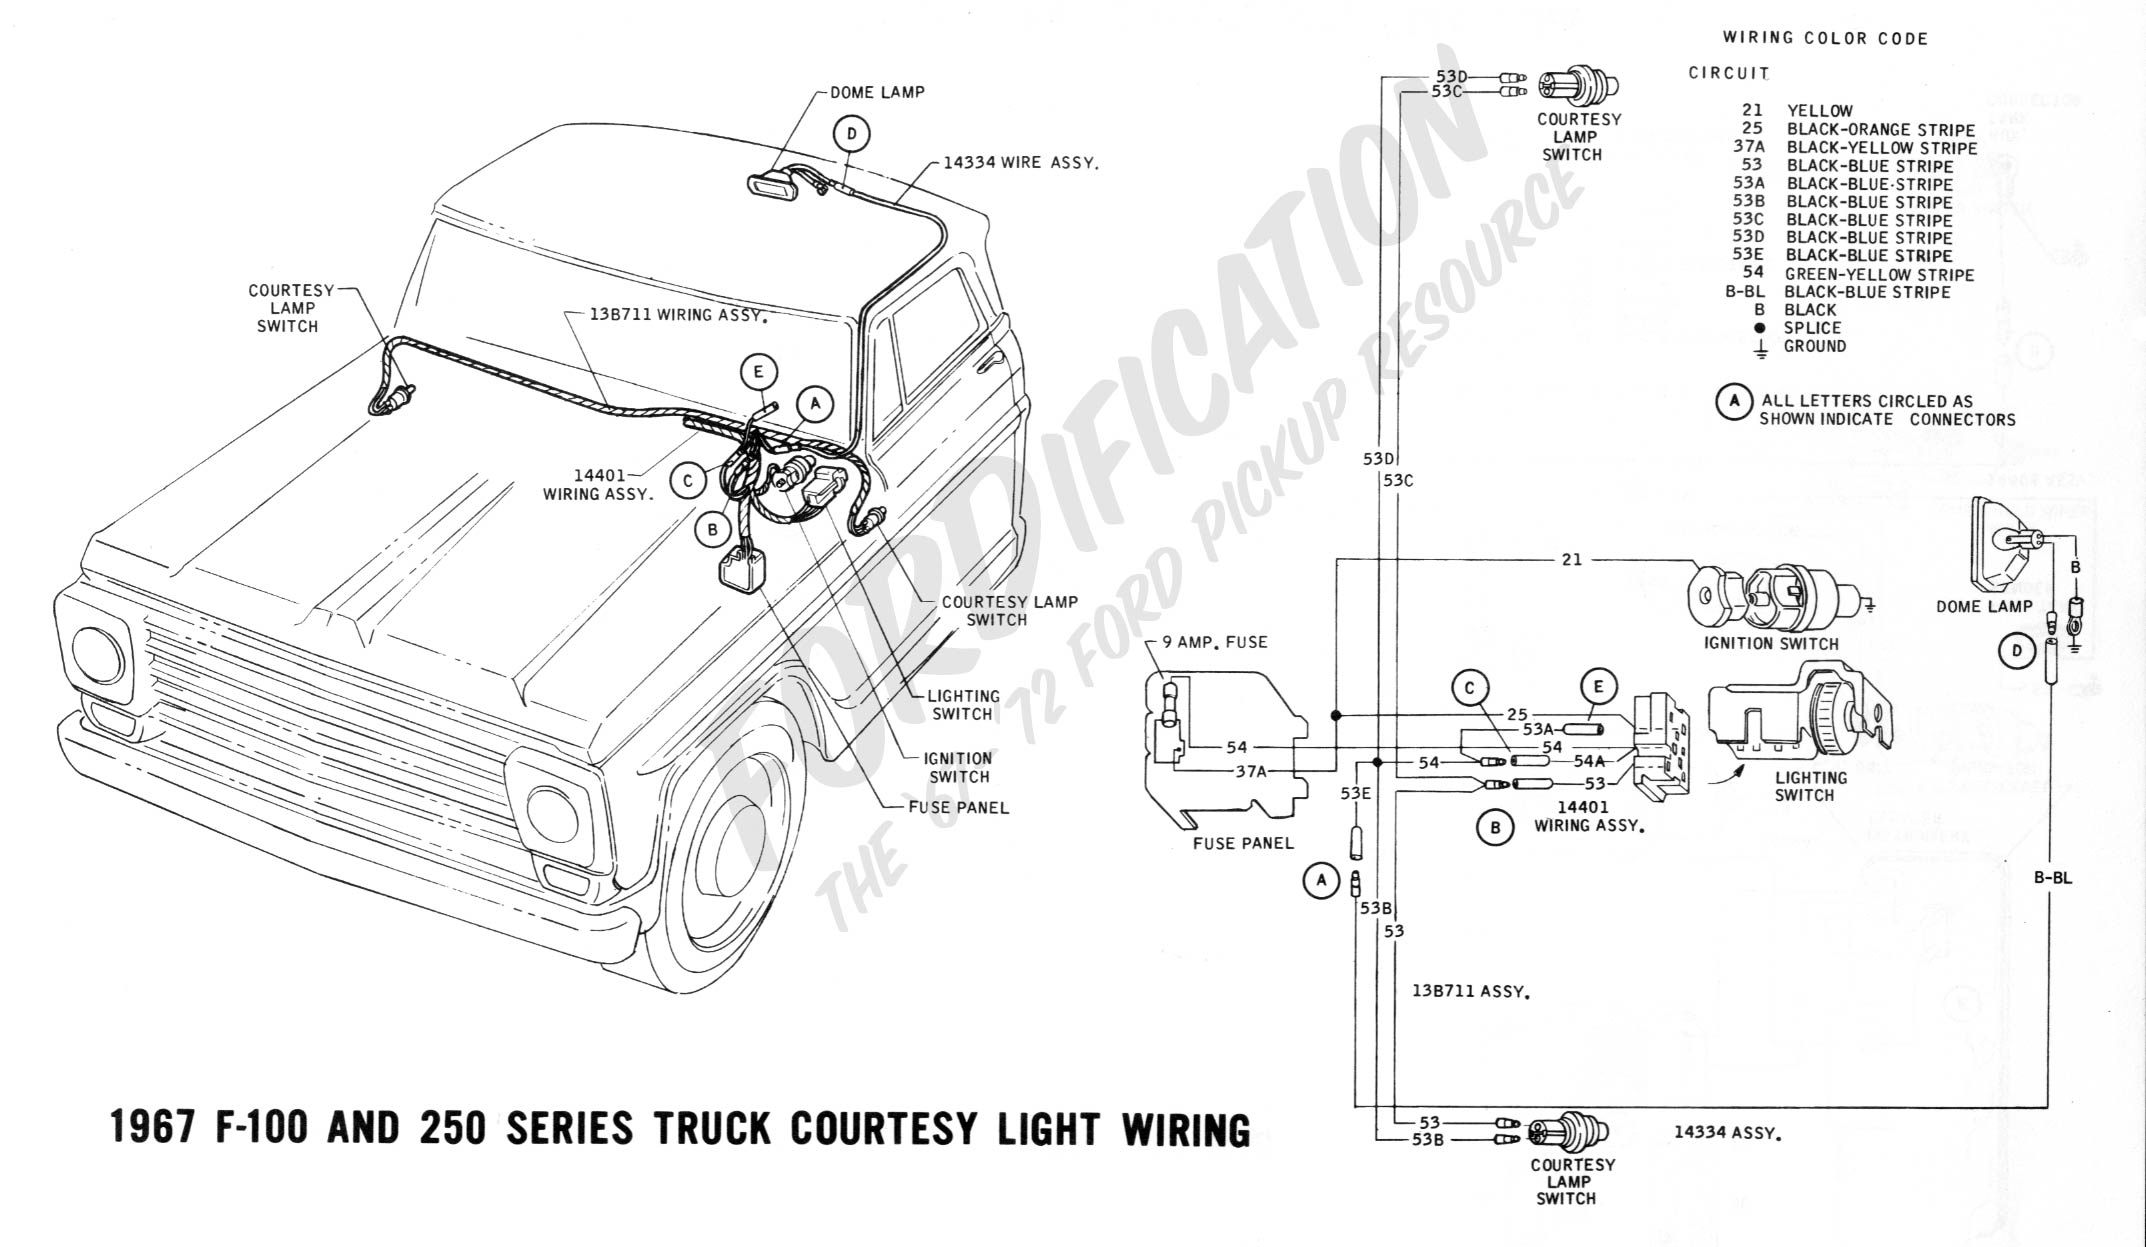 wiring 1967courtesylight ford truck technical drawings and schematics section h wiring ford ignition switch diagram at panicattacktreatment.co